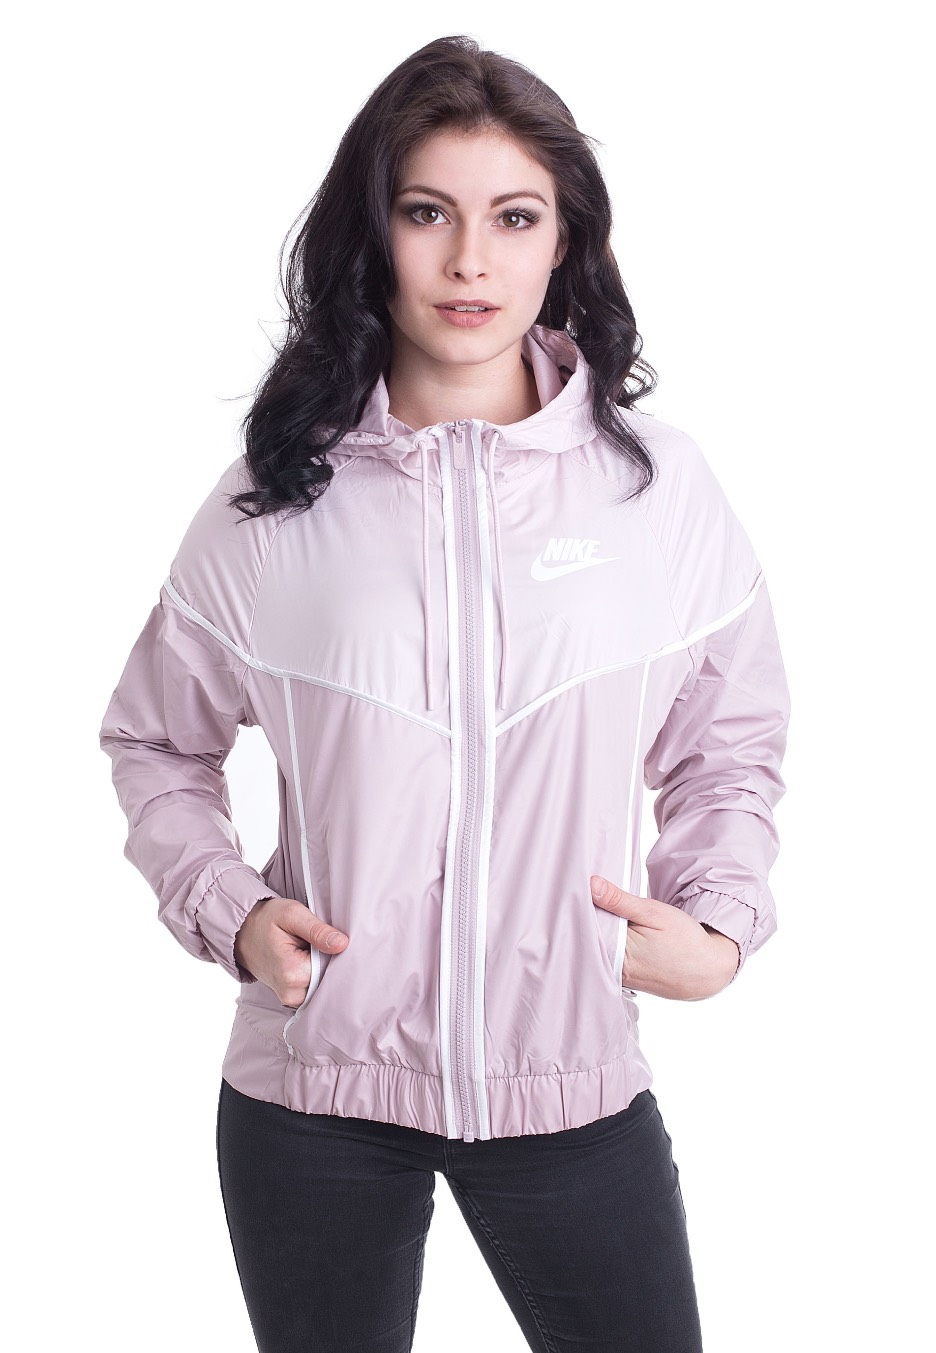 Nike - Windrunner Particle Rose Barely Rose White - Windbreaker -  Streetwear Shop - Impericon.com US 6e1027f59